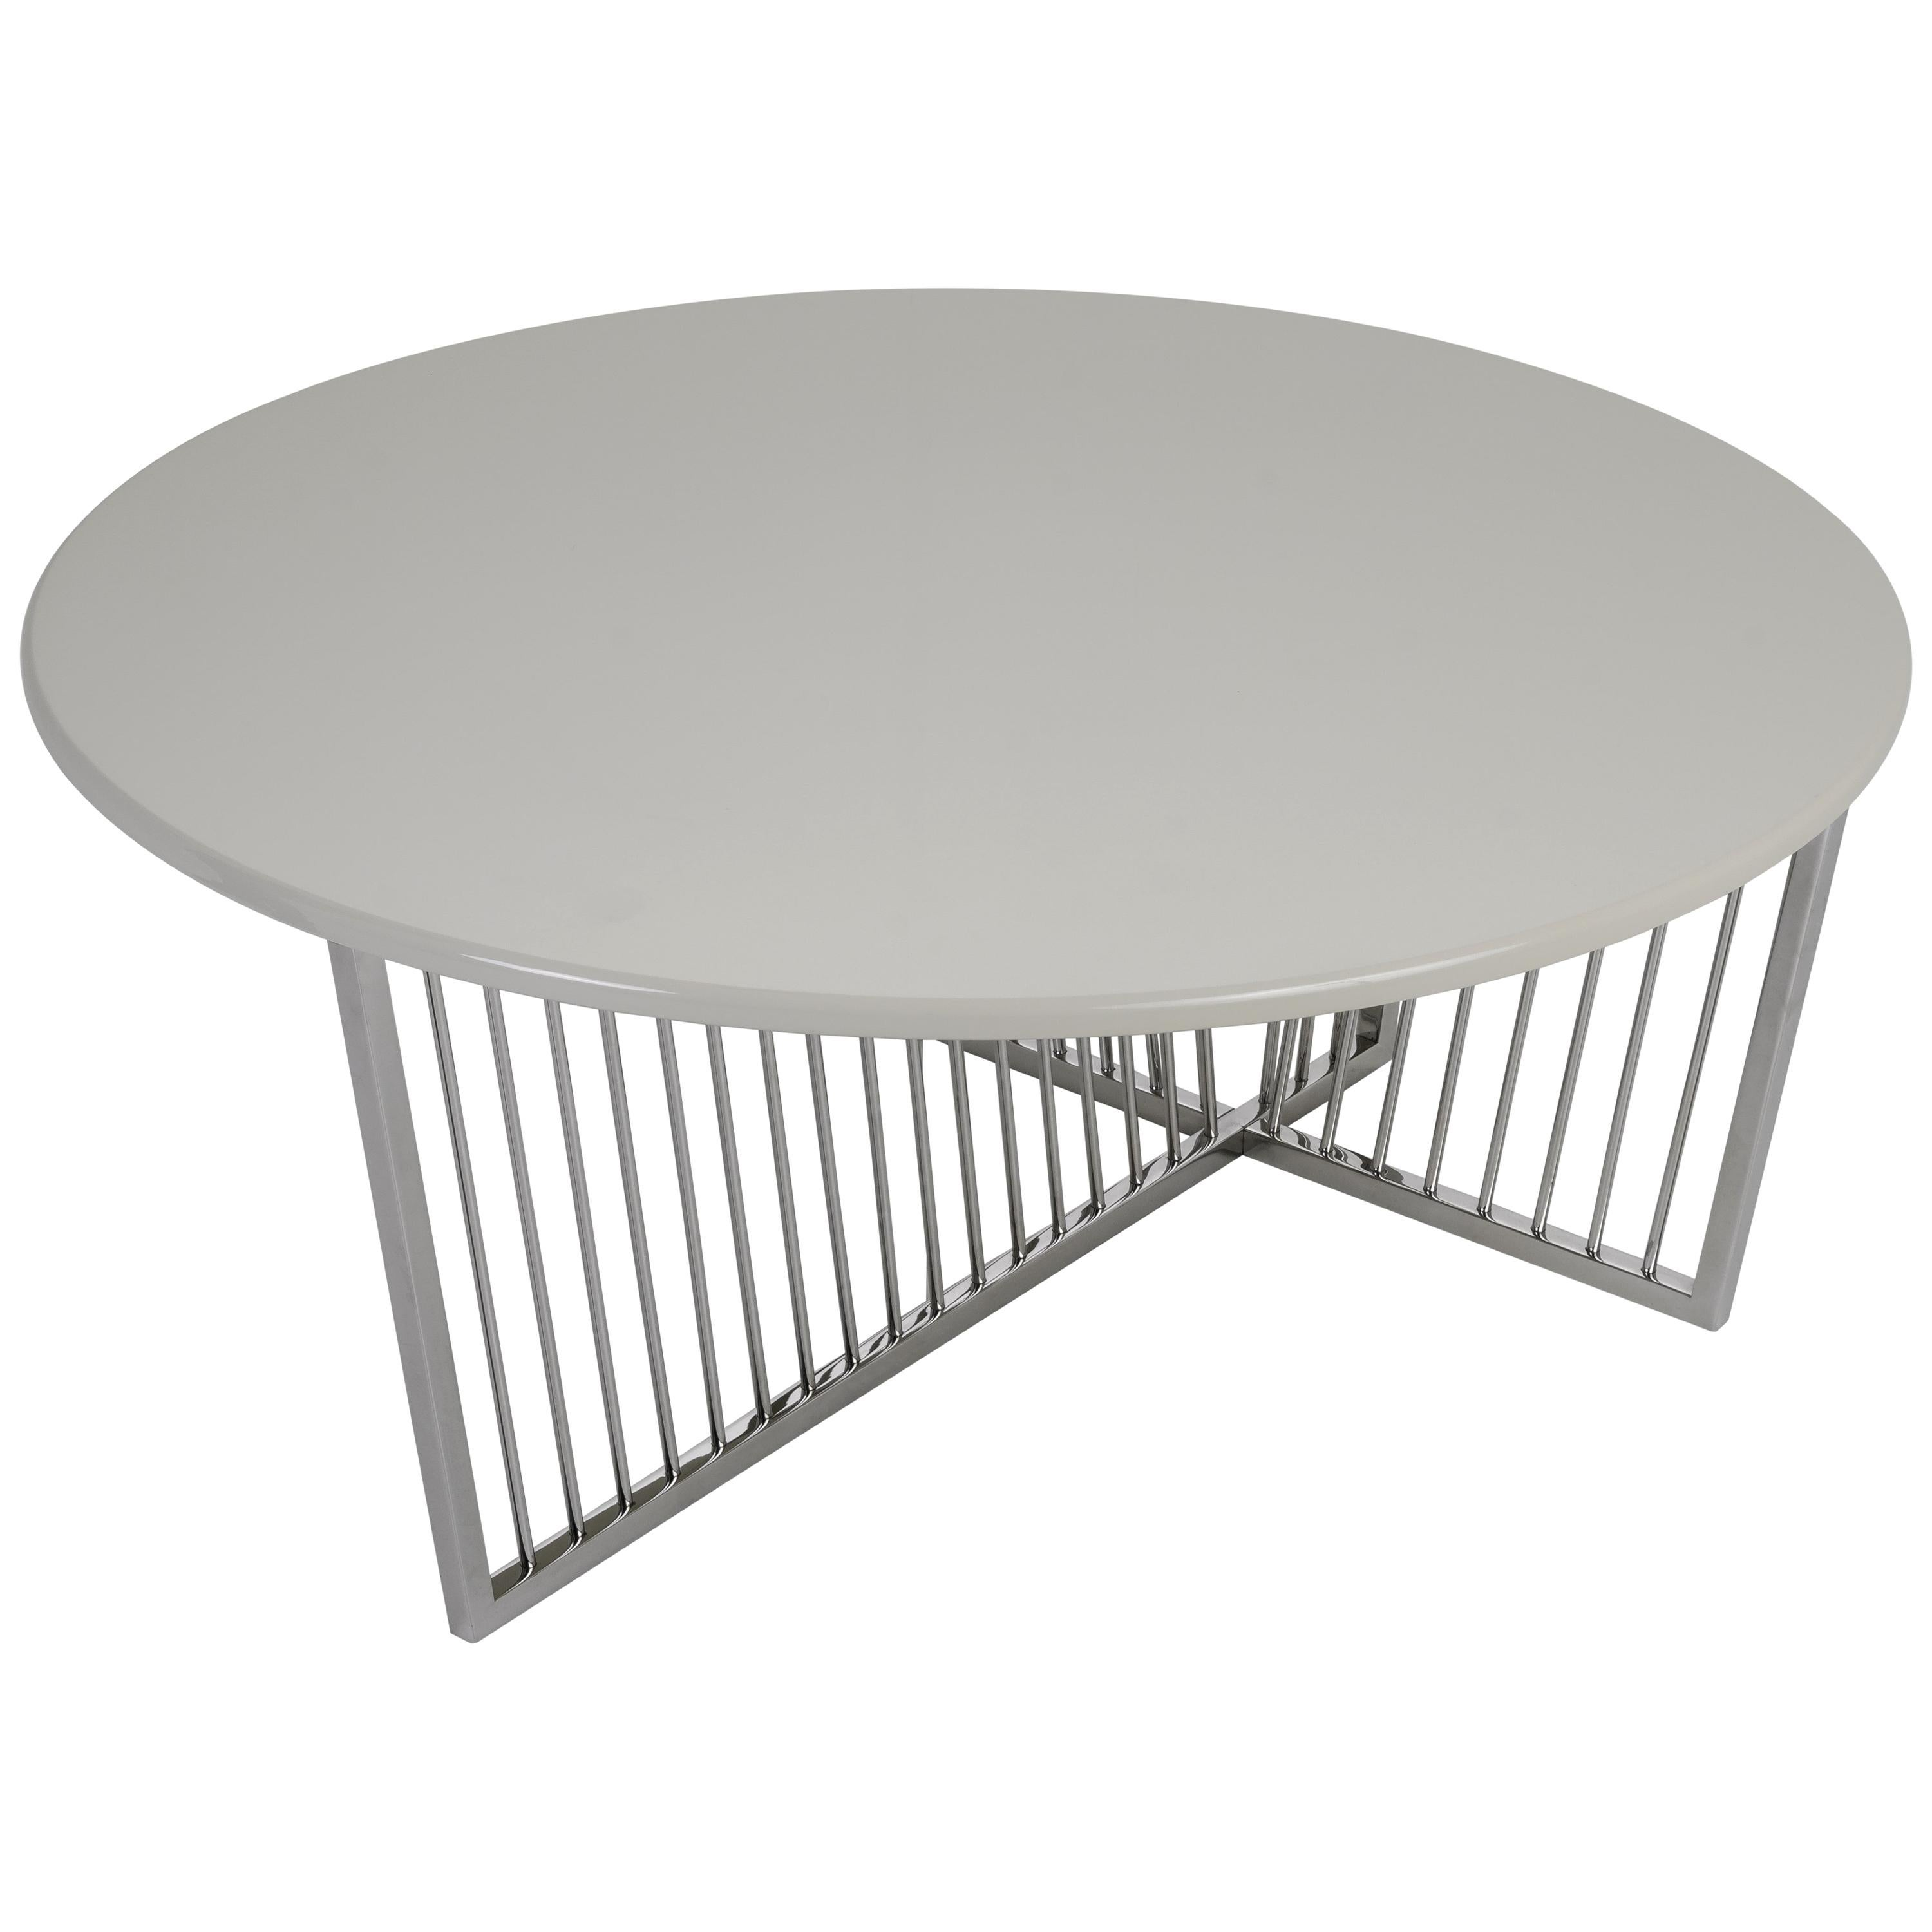 Cume Round Coffee Table with Brushed Stainless Steel Base